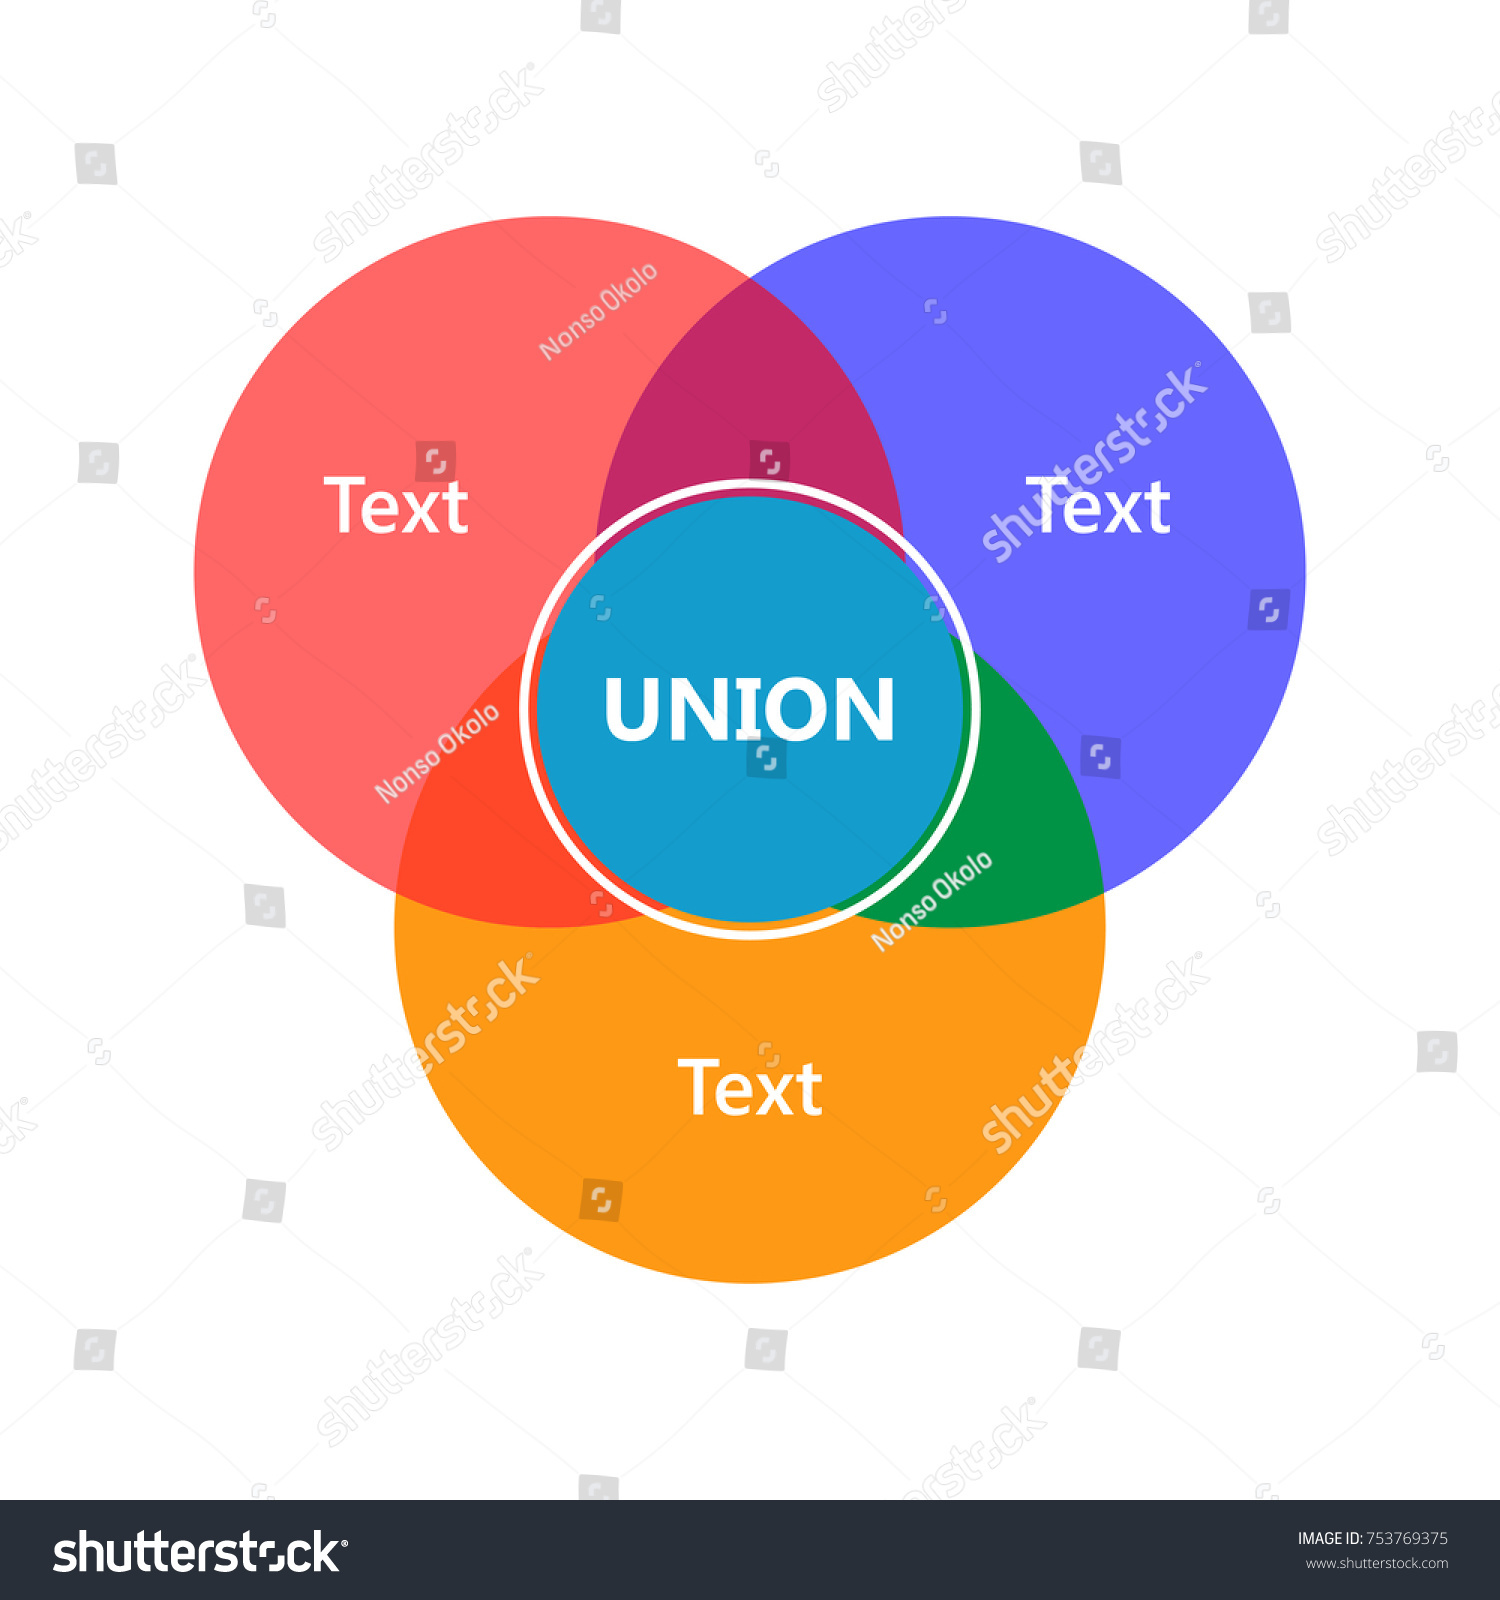 Venn diagram showing sets intersection union stock vector venn diagram showing sets intersection and union pooptronica